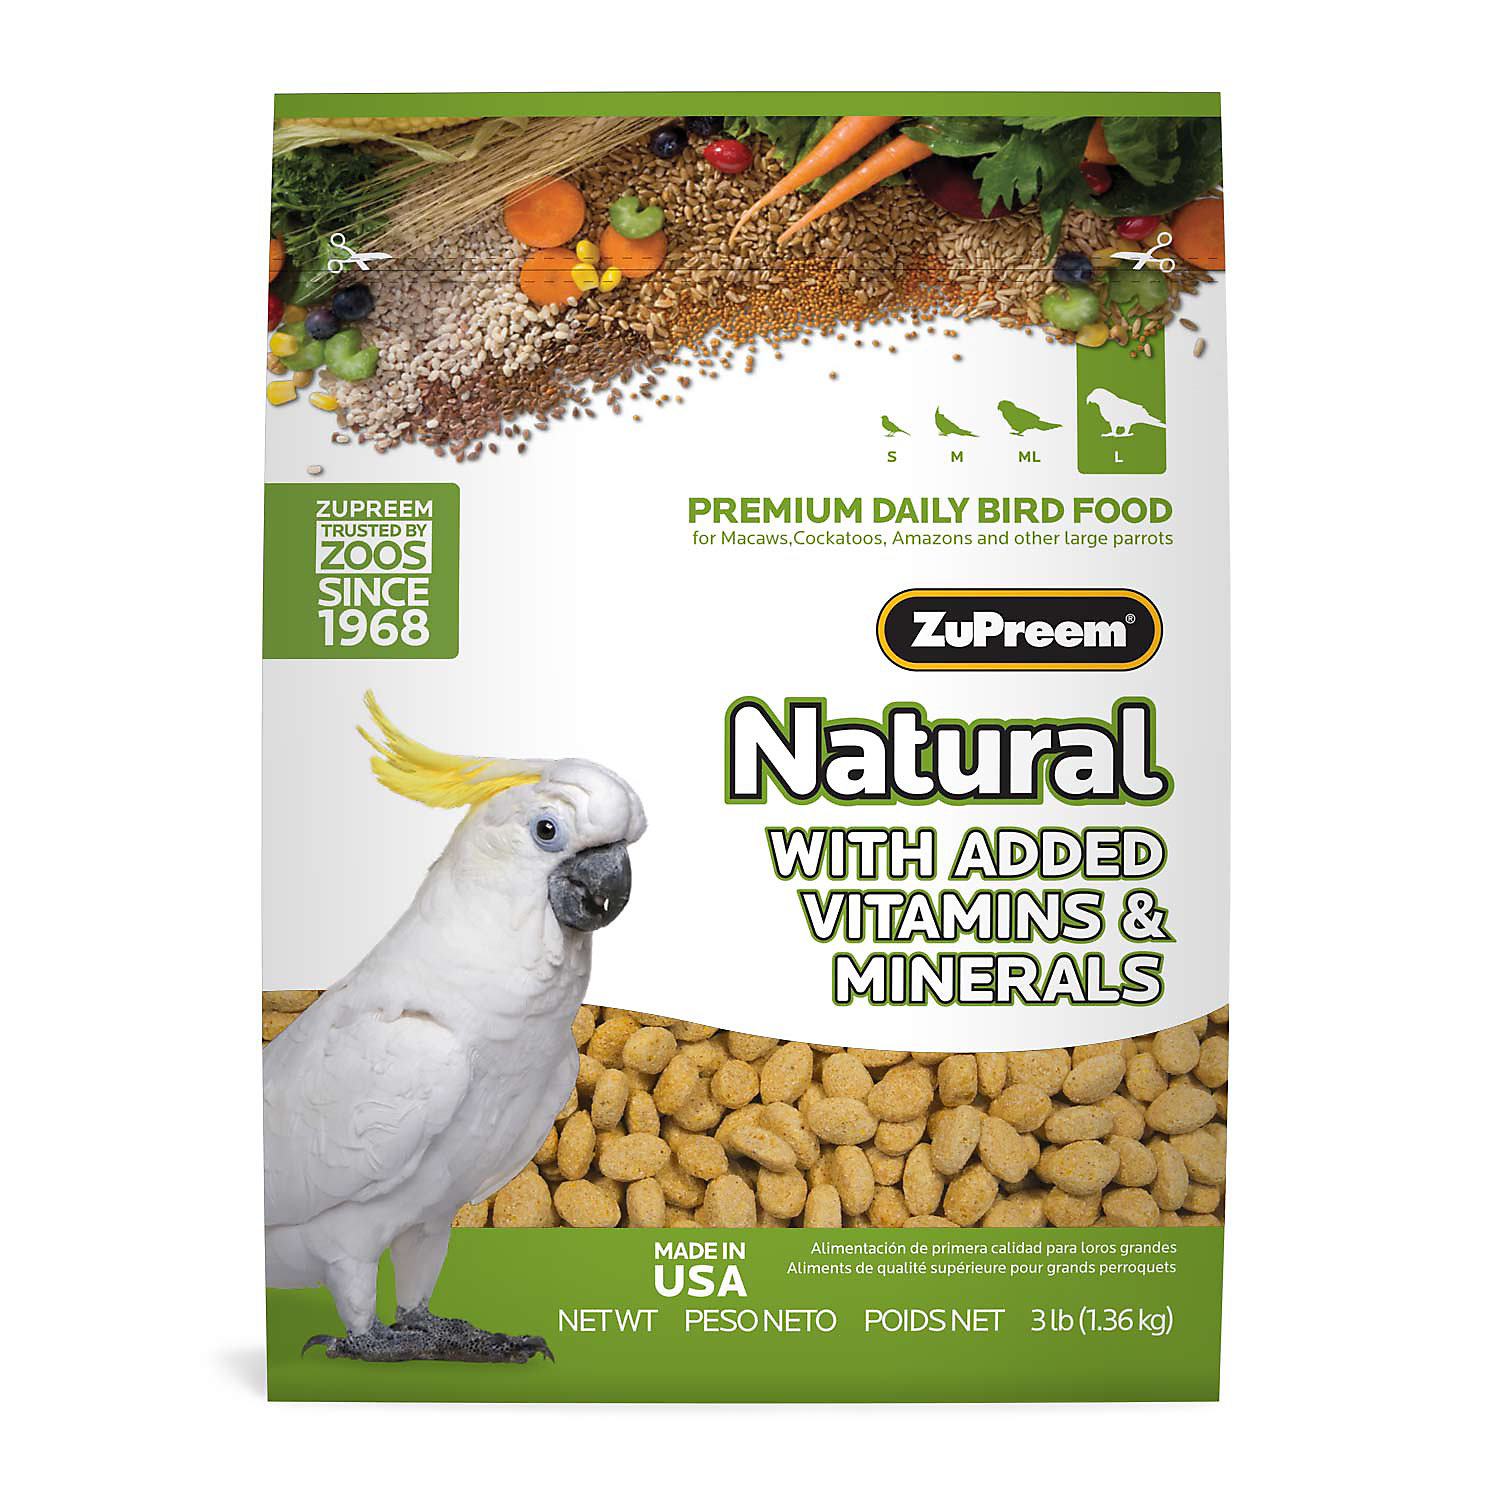 Zupreem Classic Avianmaintenance Natural Bird Diet For Large Parrots 3 Lbs.